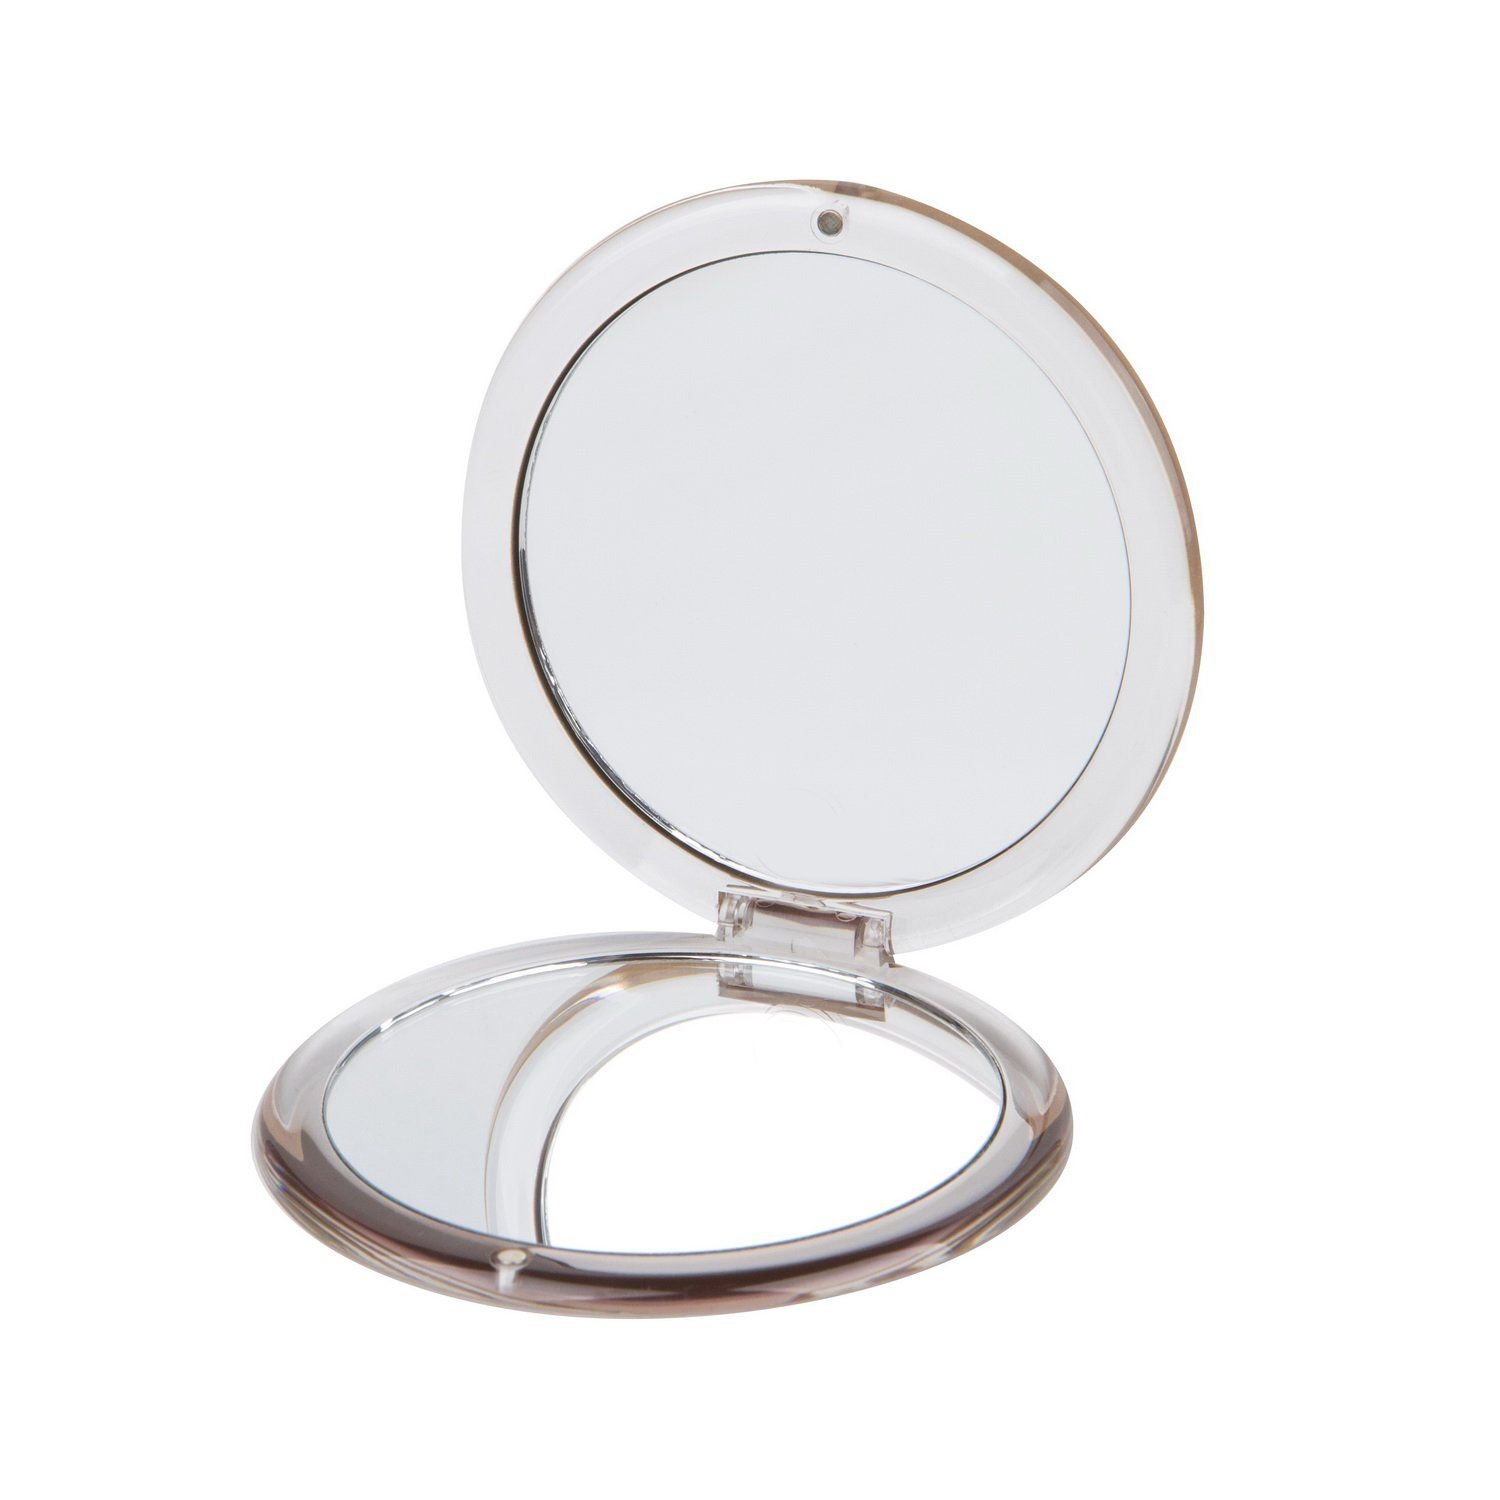 Round Pmma Compact Mirror Double Sided Travel Makeup Mirror With